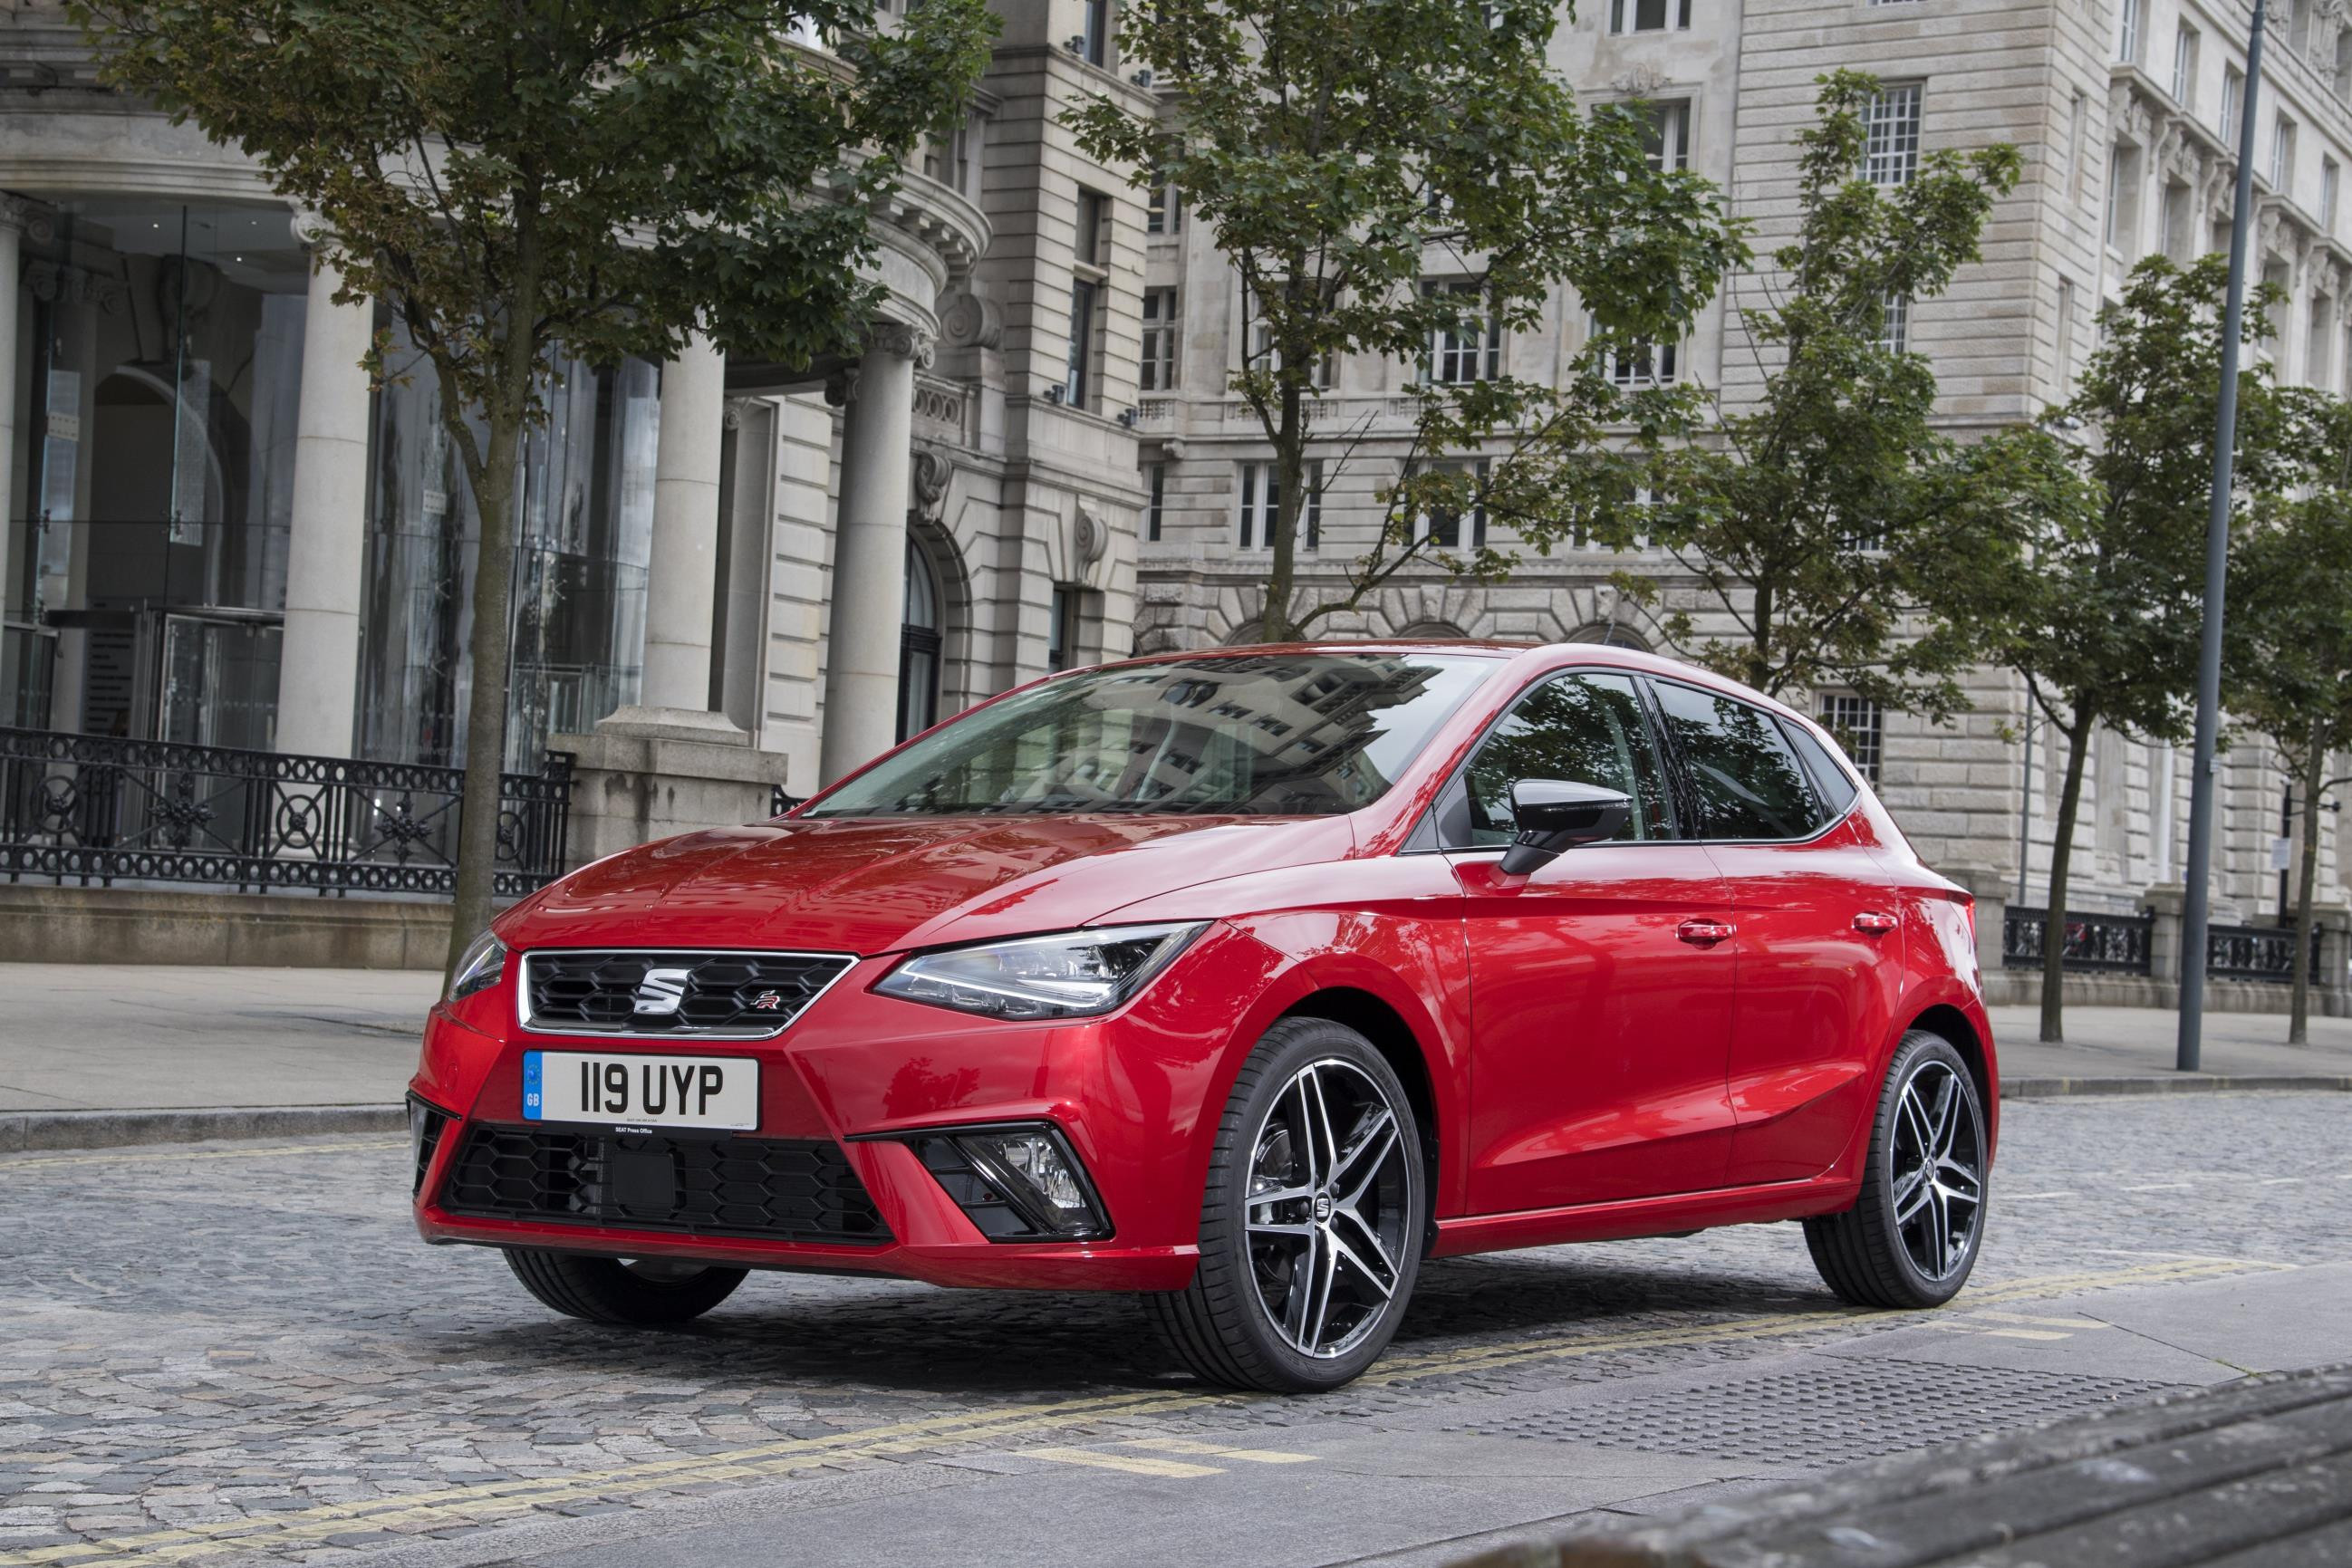 Red SEAT Ibiza parked on a leafy road